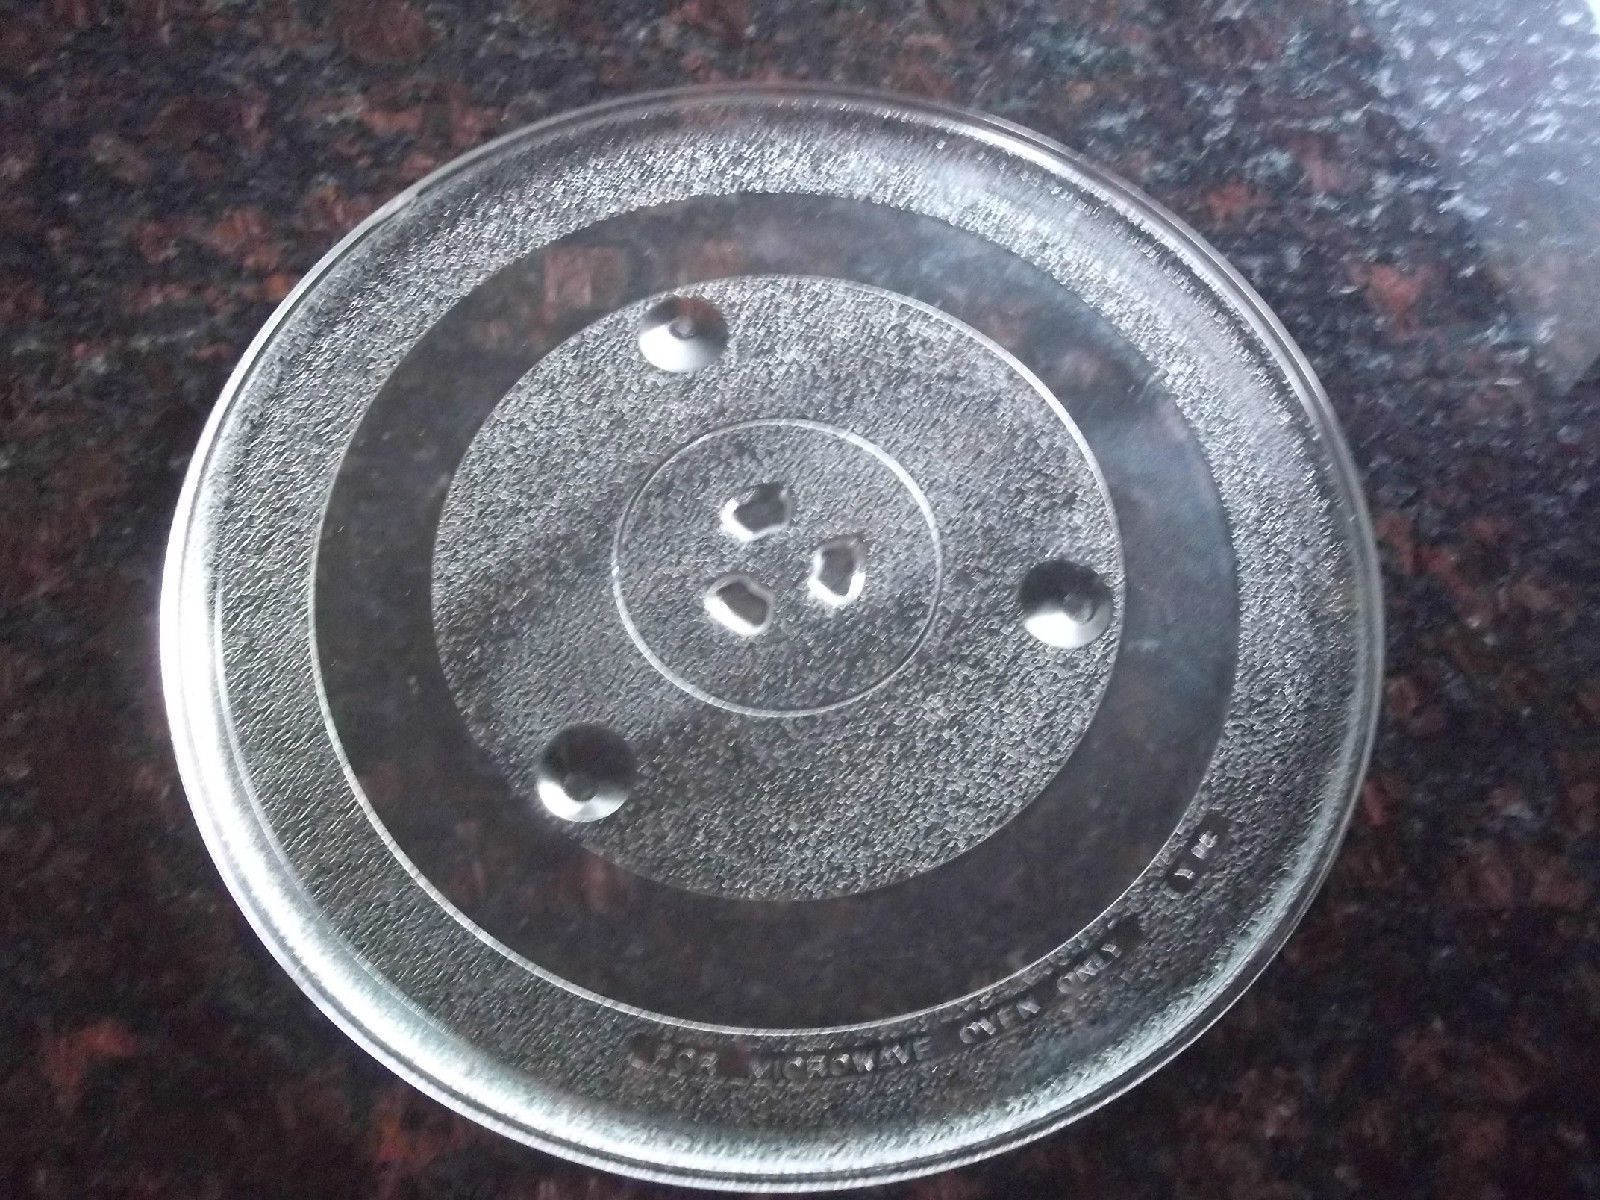 Pin by PyrexKitchen on Microwave Plates Microwave plate